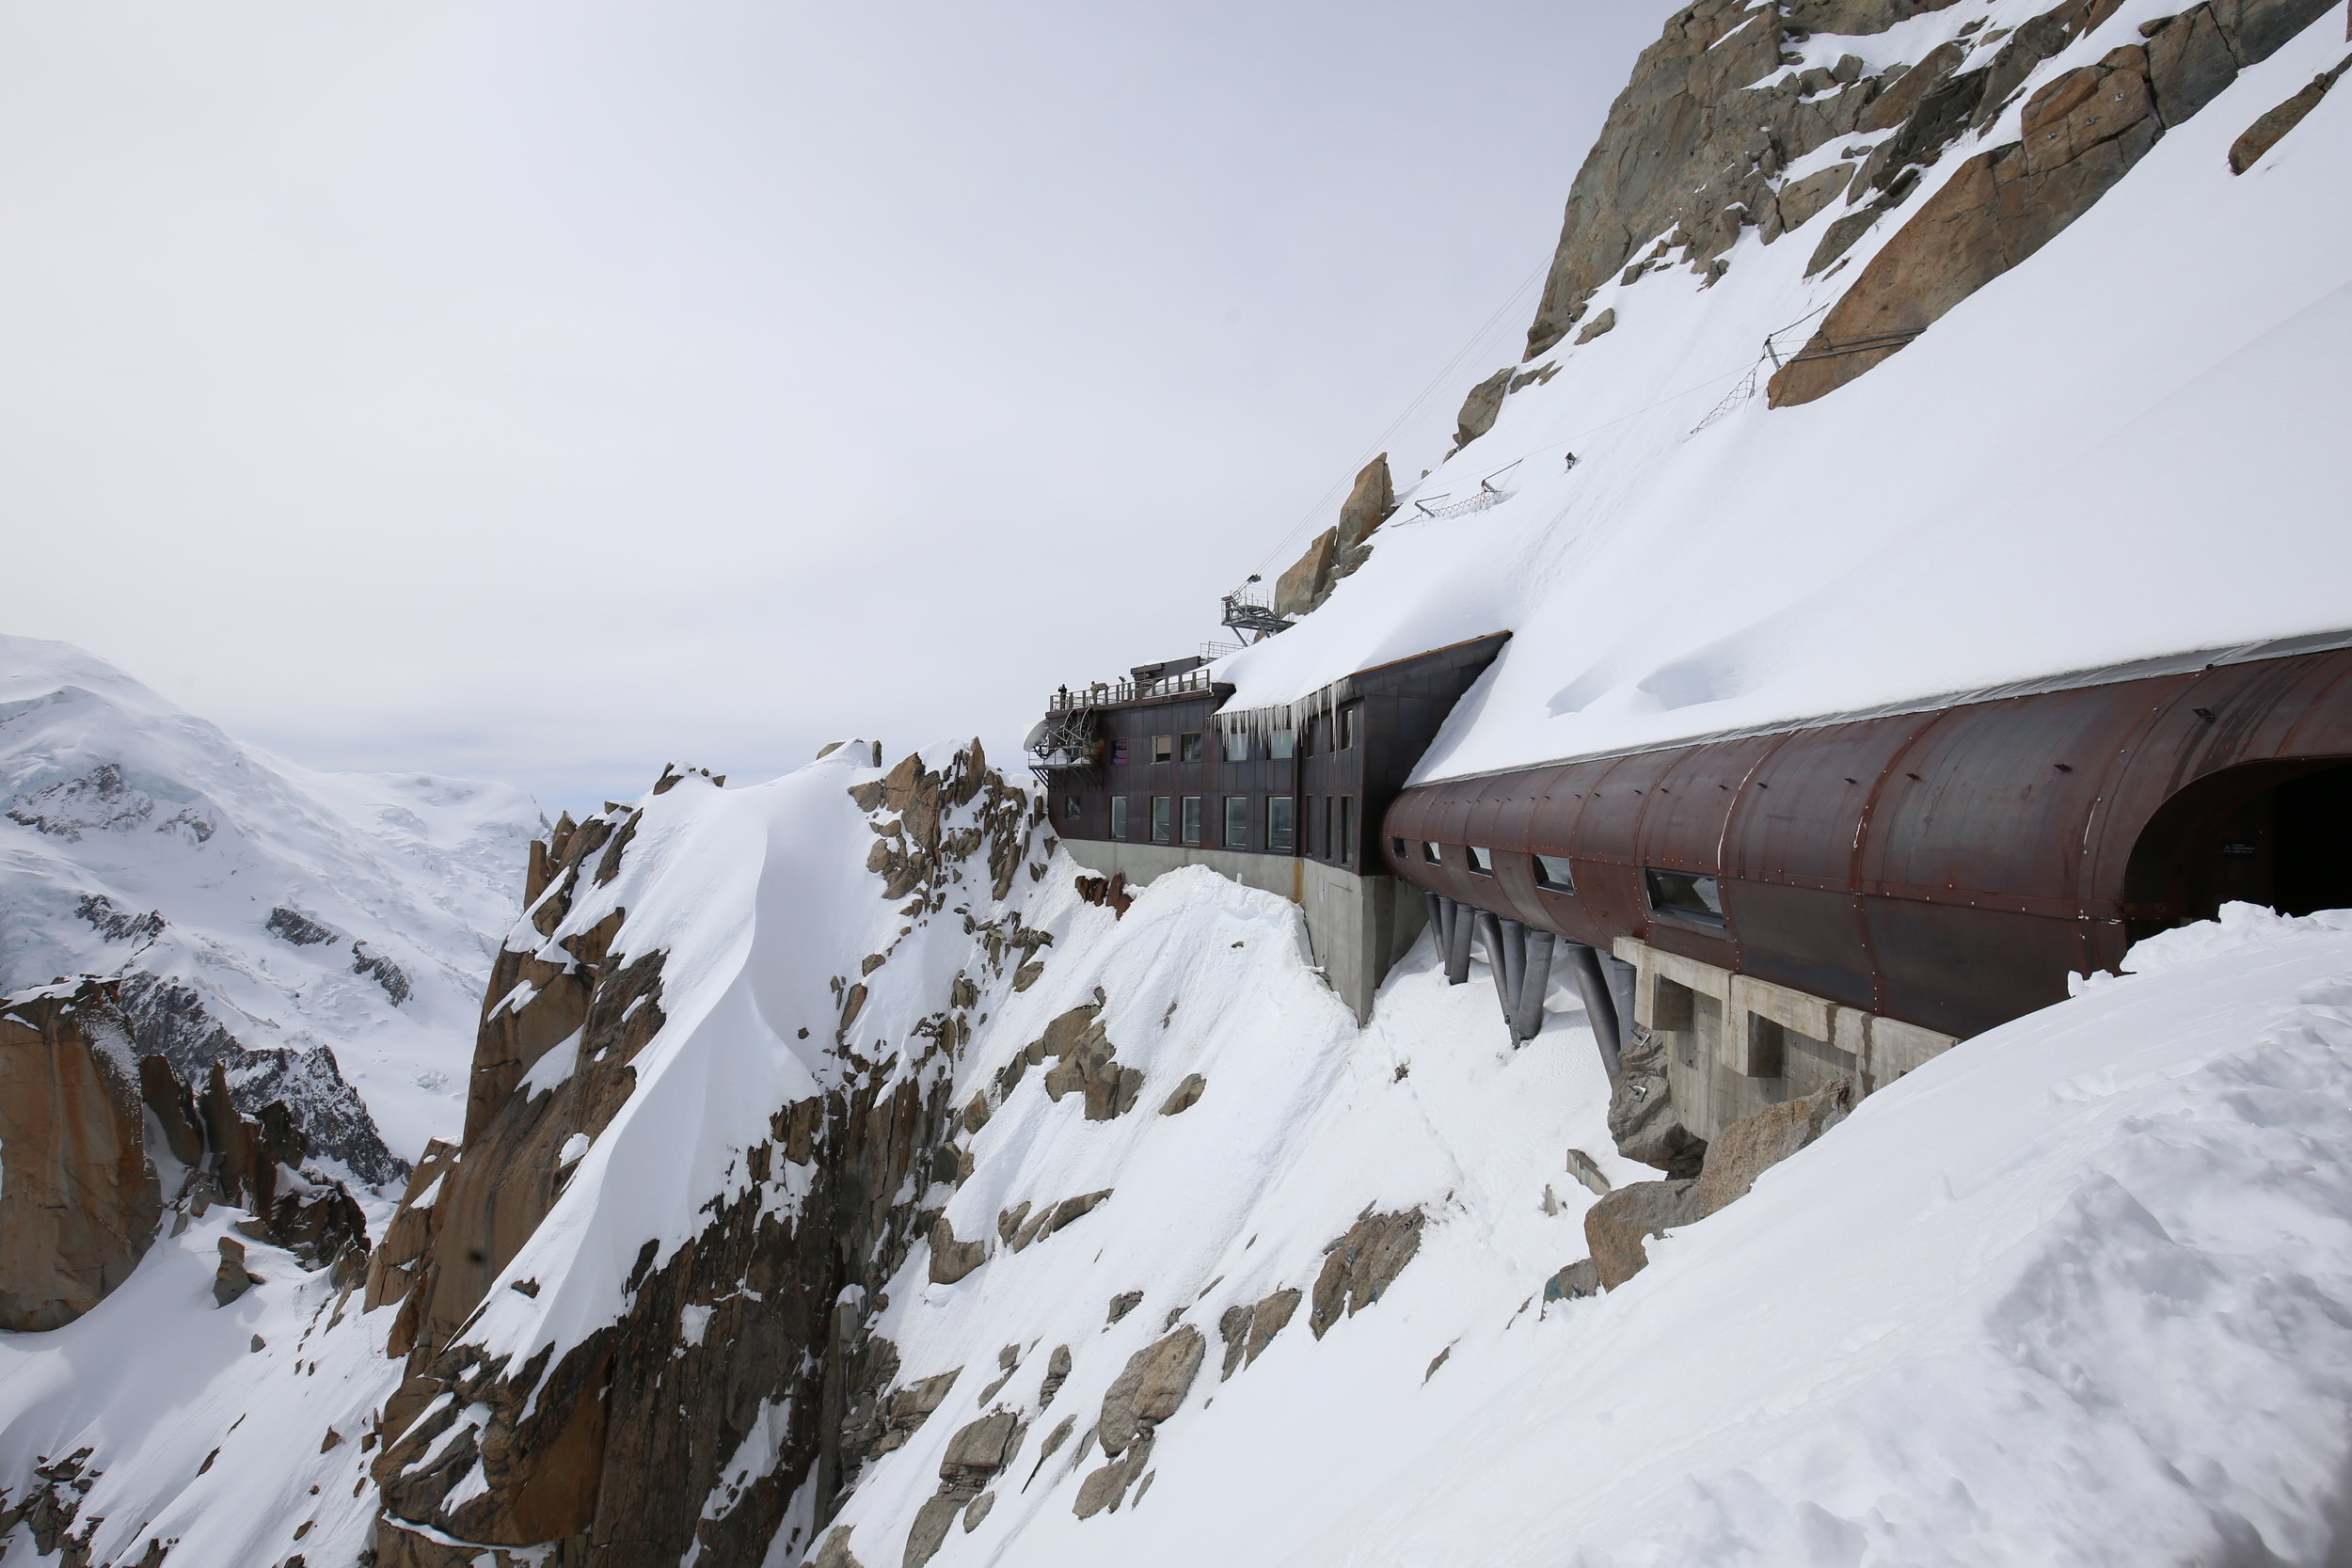 The iron tunnel on the mountain top.